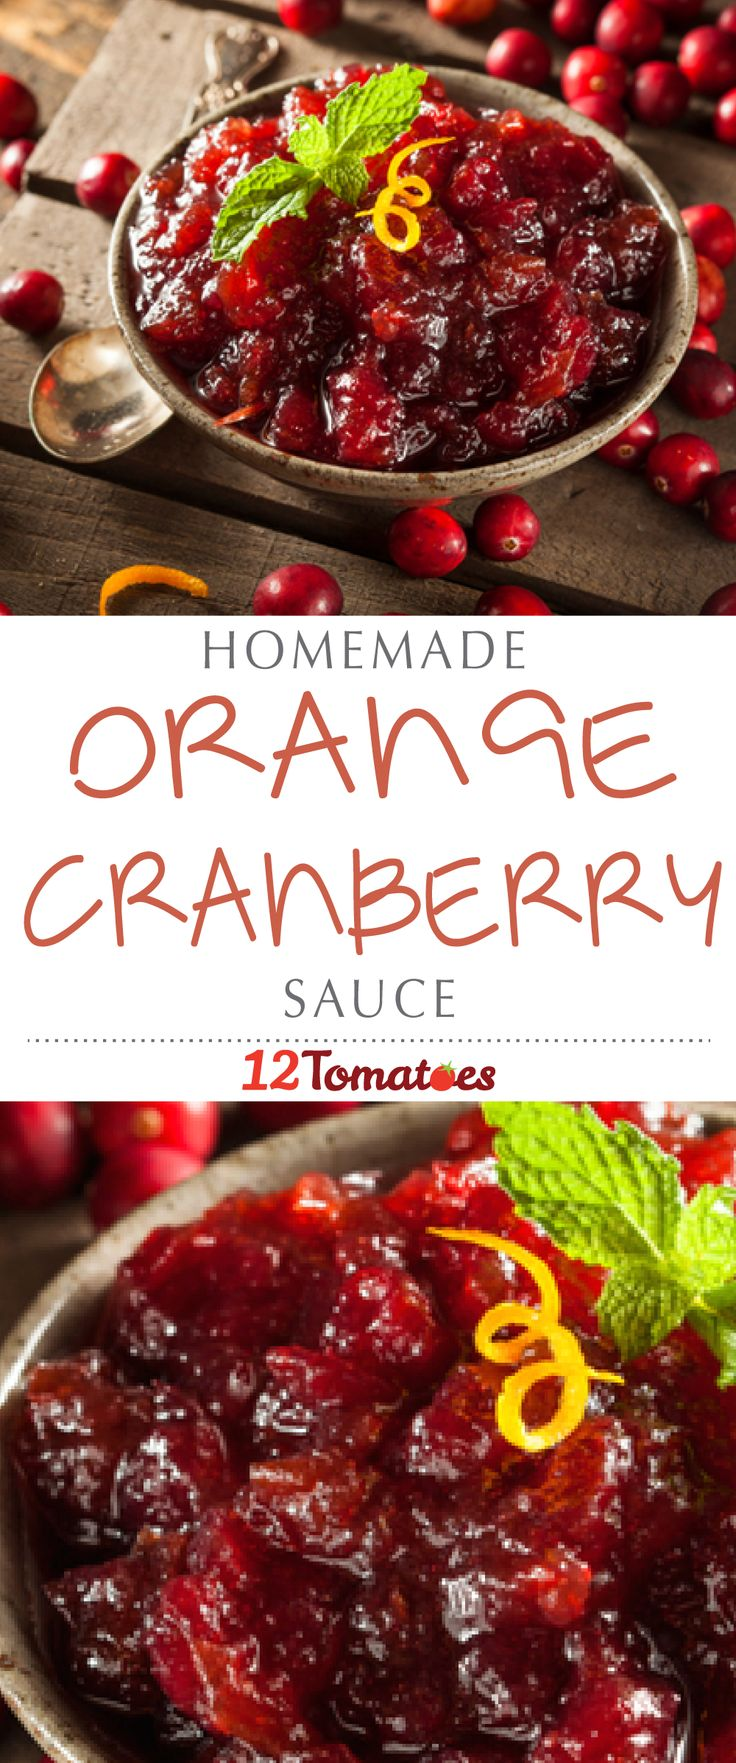 This cranberry (orange) sauce tastes divine when paired with turkey, stuffing and mashed potatoes, and all you have to do is throw the ingredients in a pot; it's such an easy recipe, you can delegate it to someone and not worry about what it's going to turn out like. #Thanksgiving #ThanksgivingRecipes